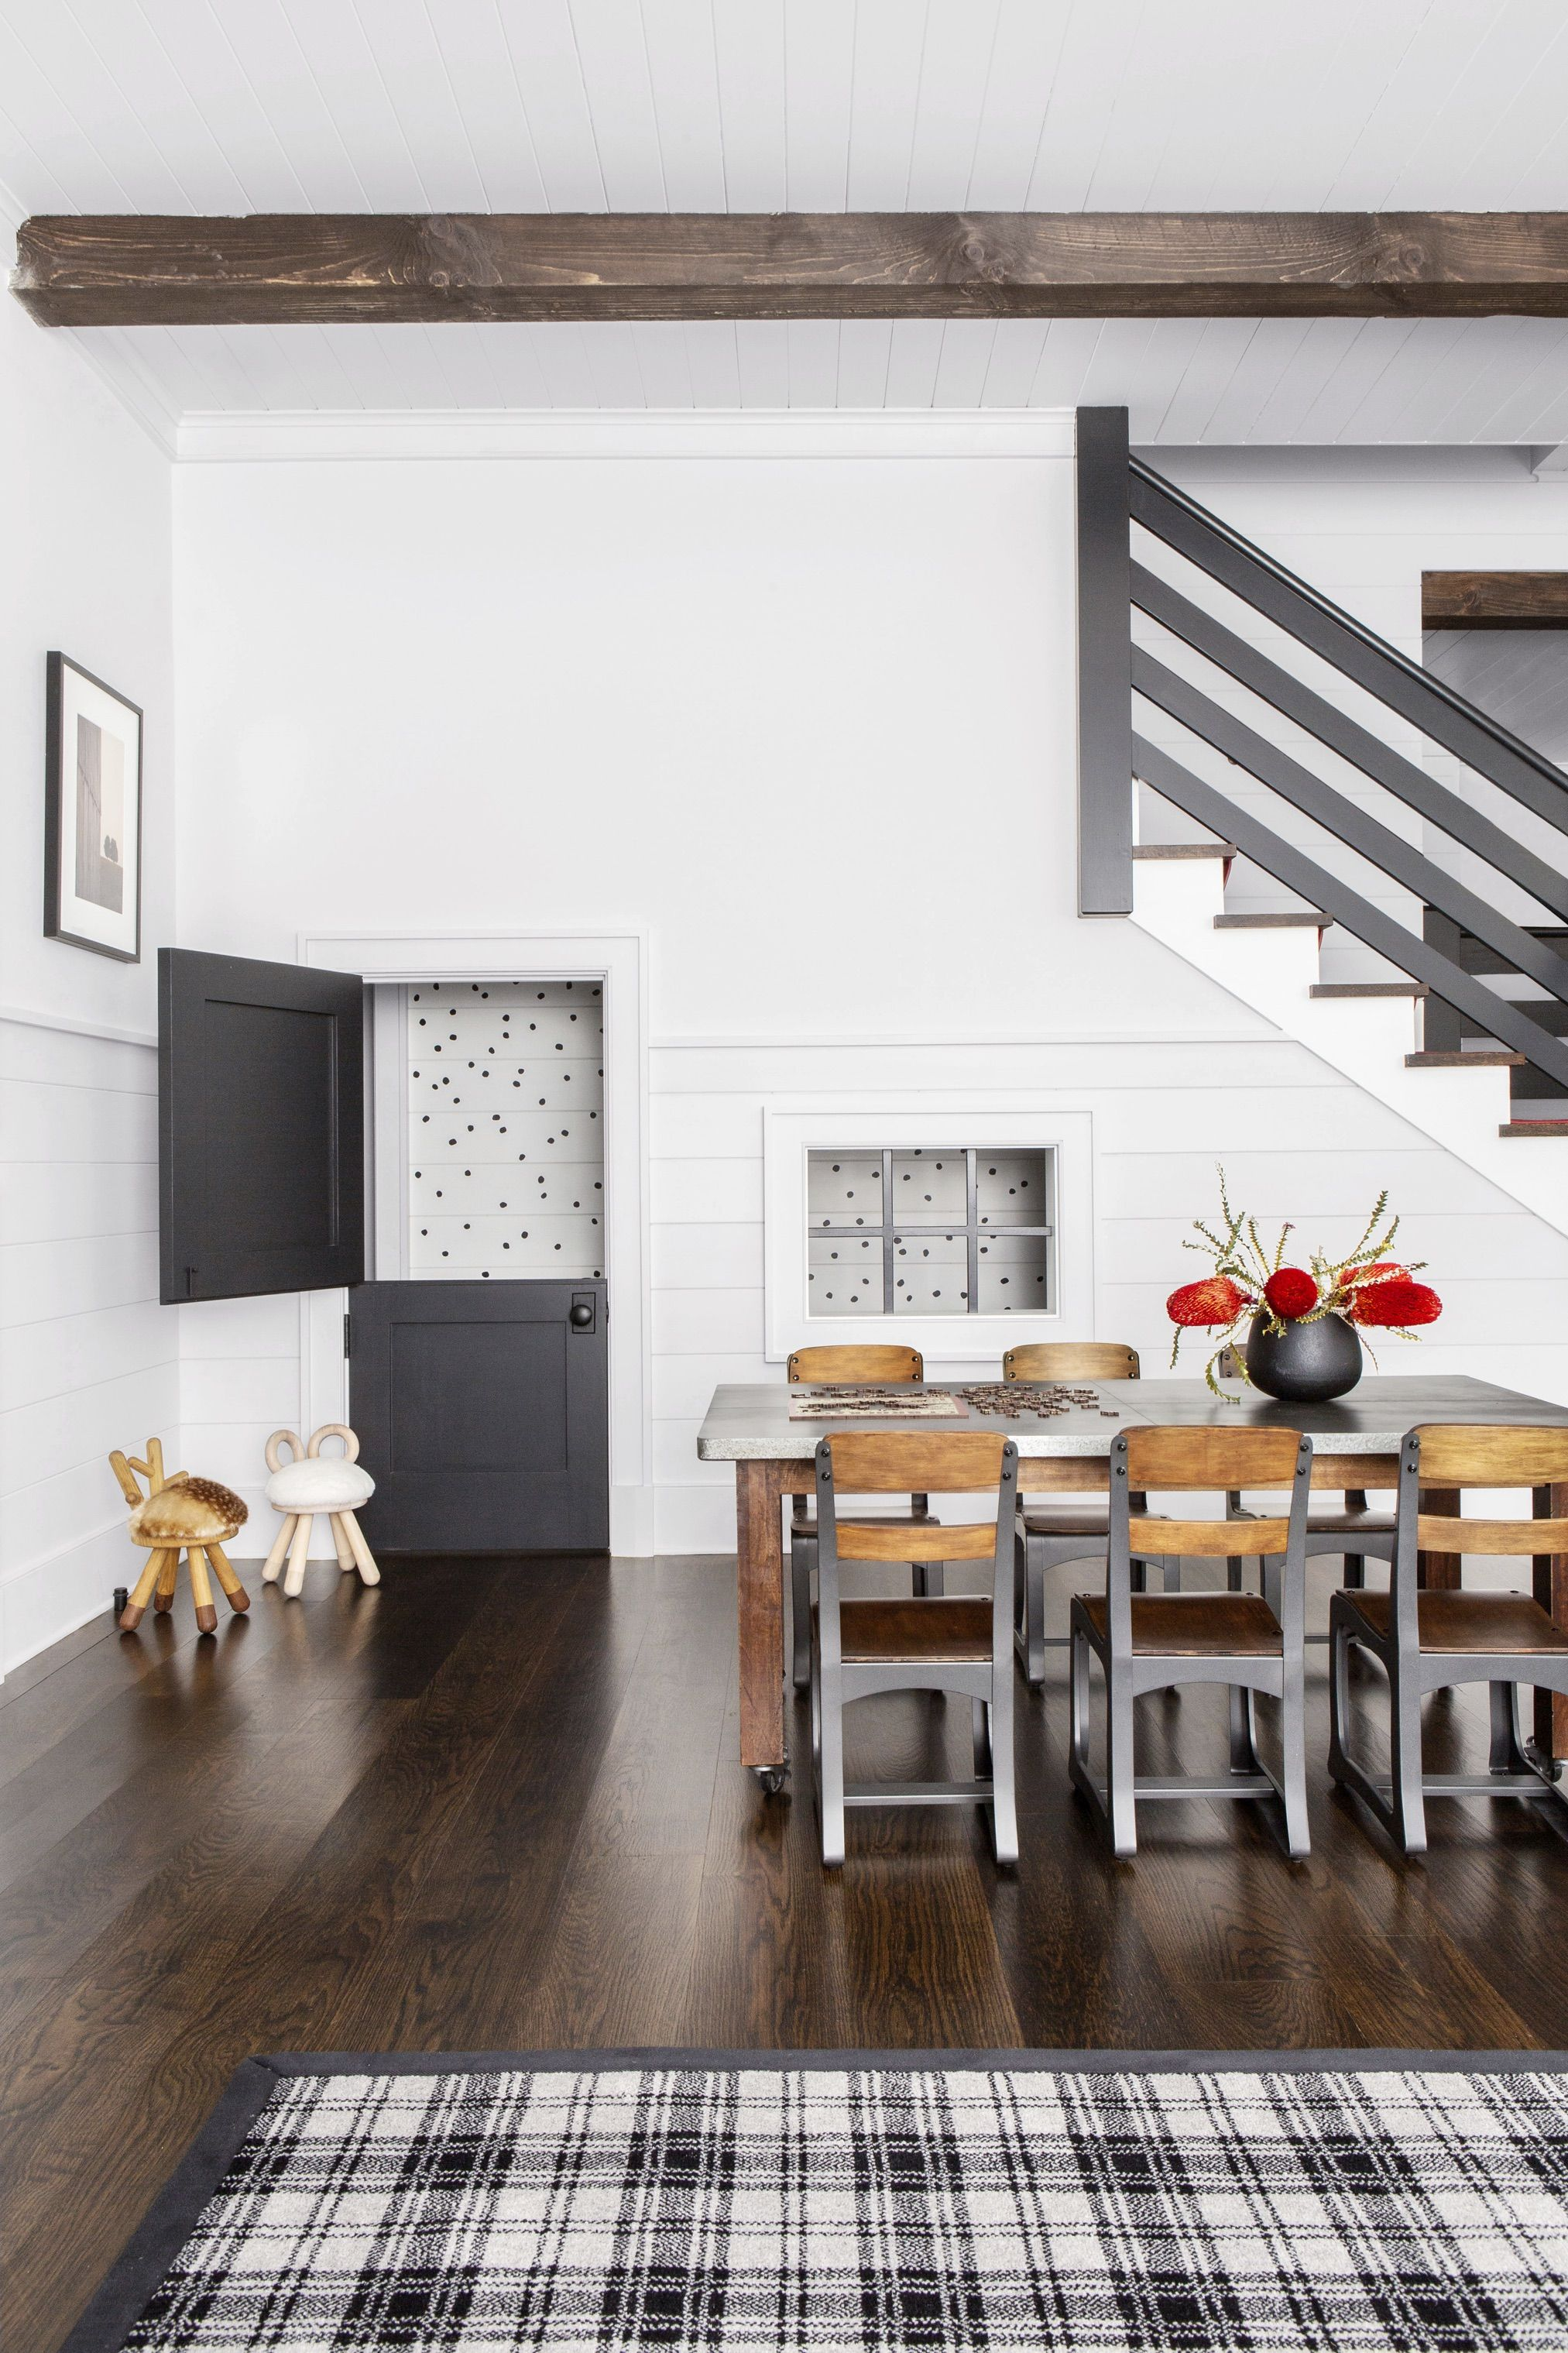 10 Basement Paint Colors Decorating Tips For A Dark Room